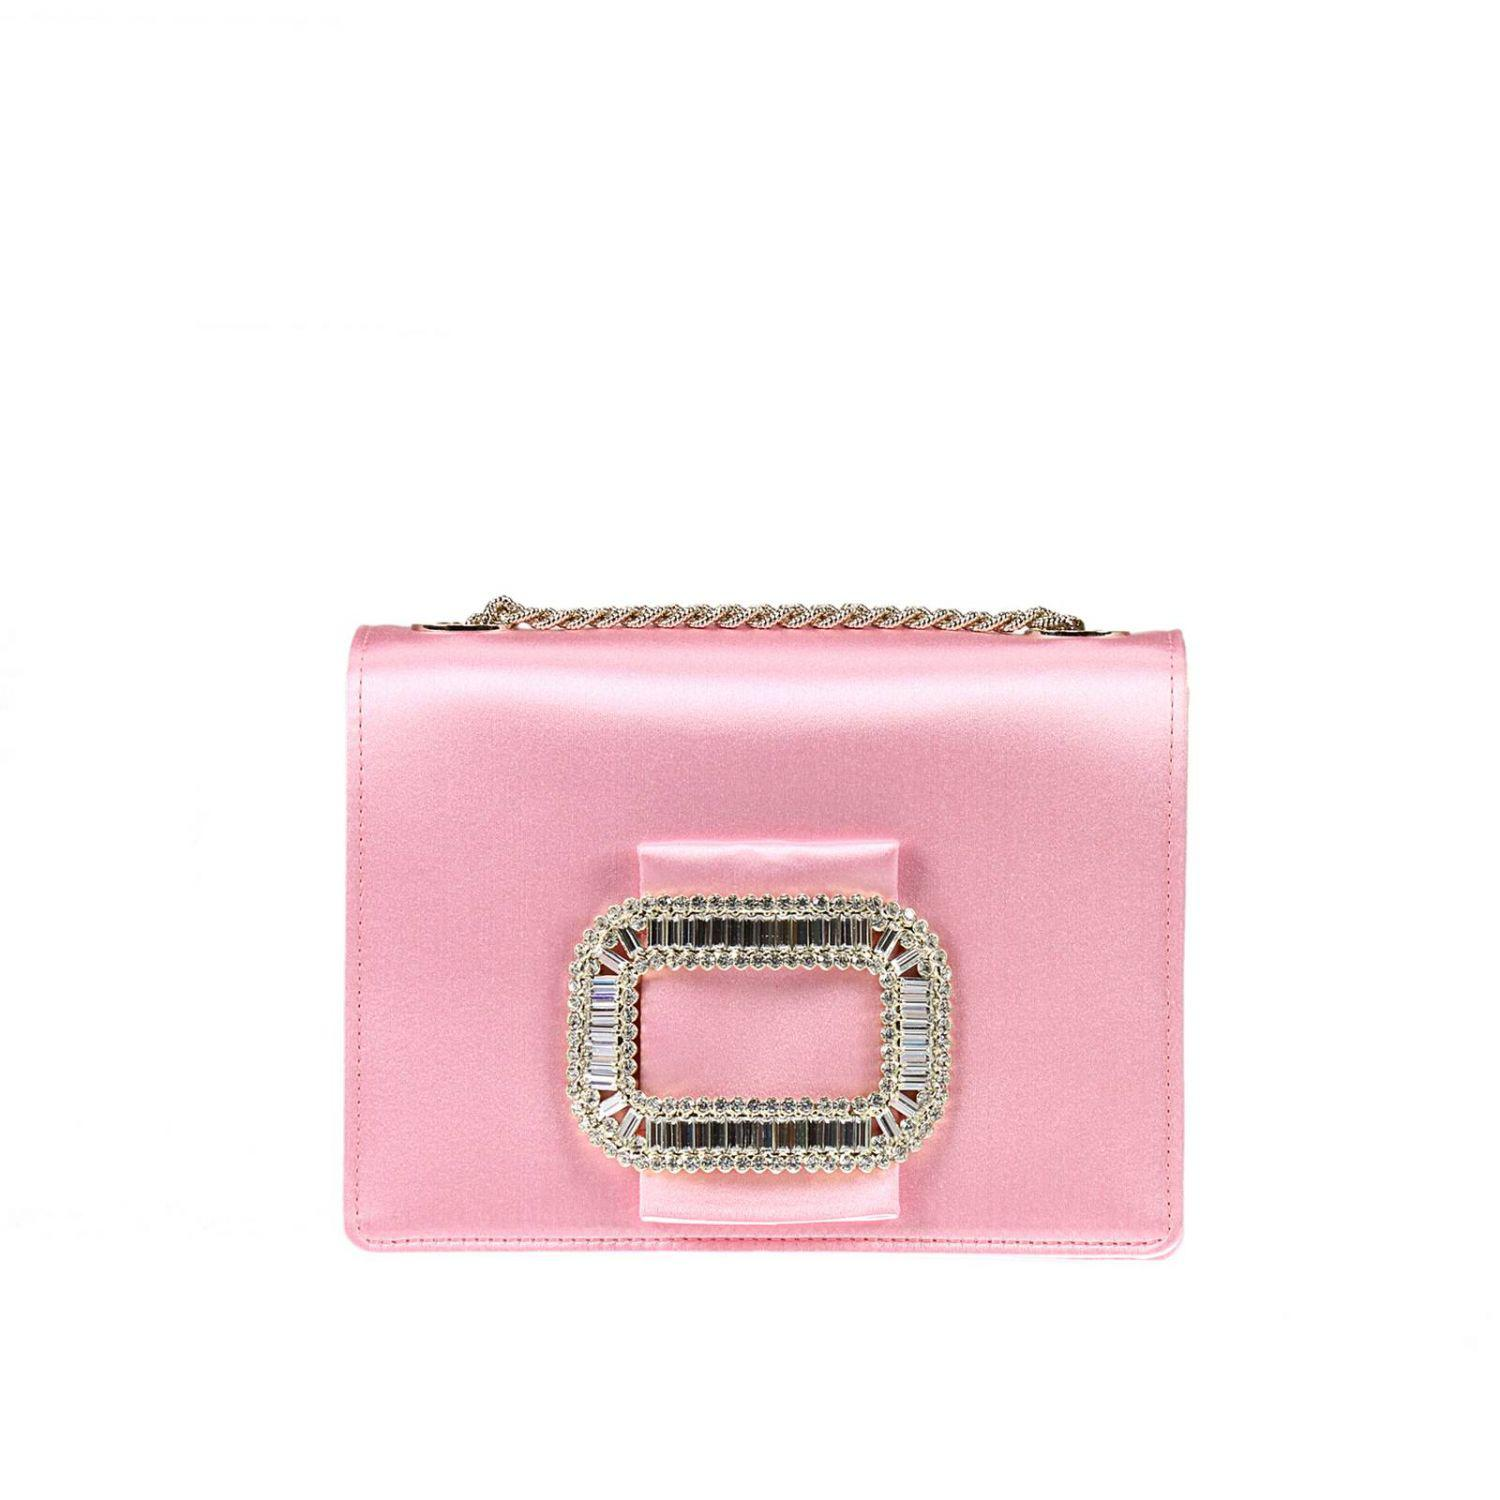 Lyst - Roger Vivier Satin Crystal-Buckle Chain Strap Clutch in Pink 271e1e1943